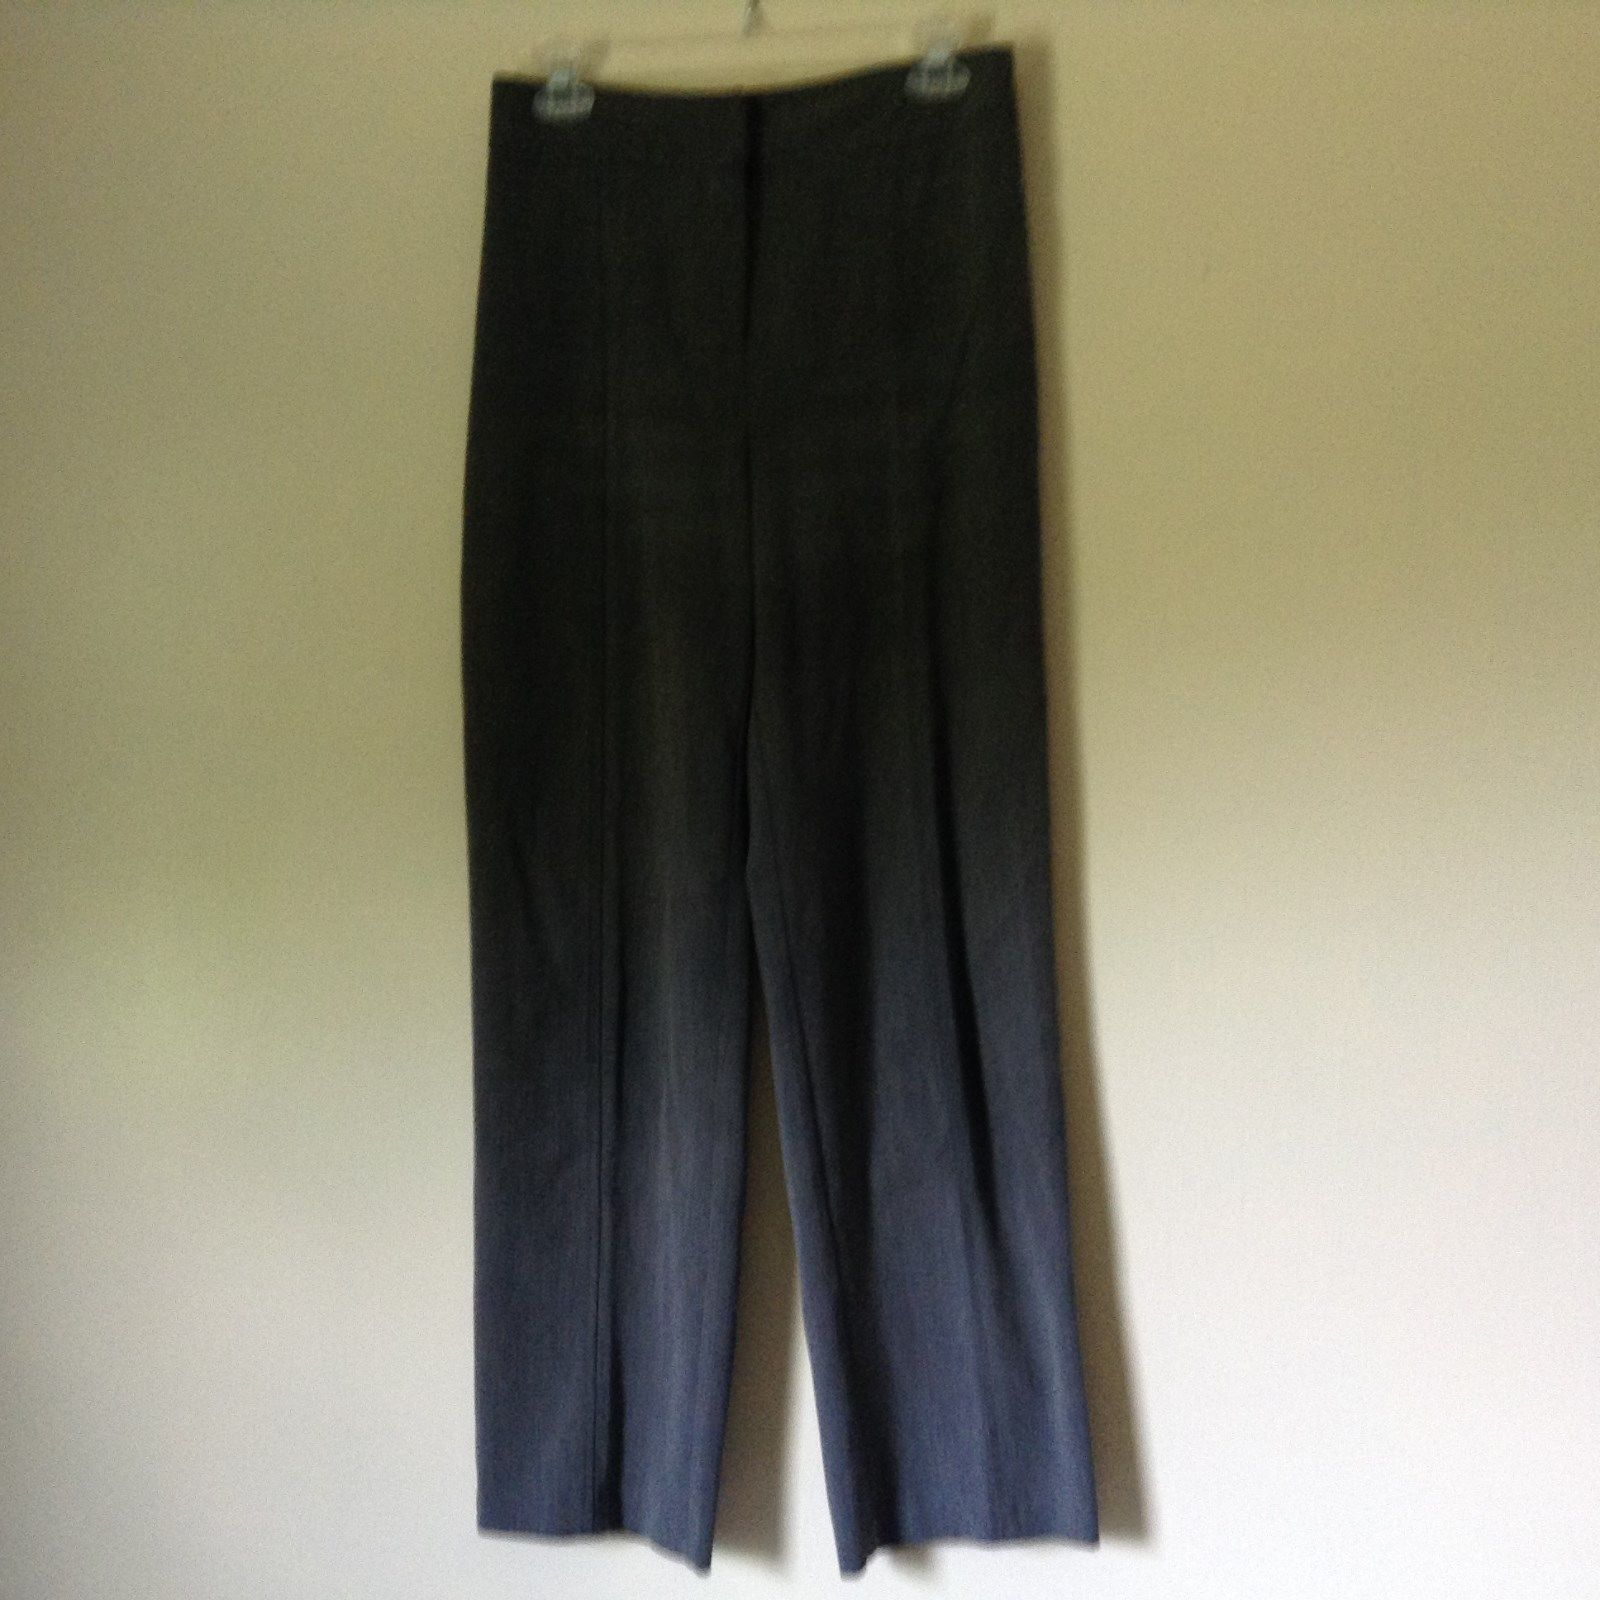 Briggs New York Gray Dress Pants Size 8 Elastic Waistband